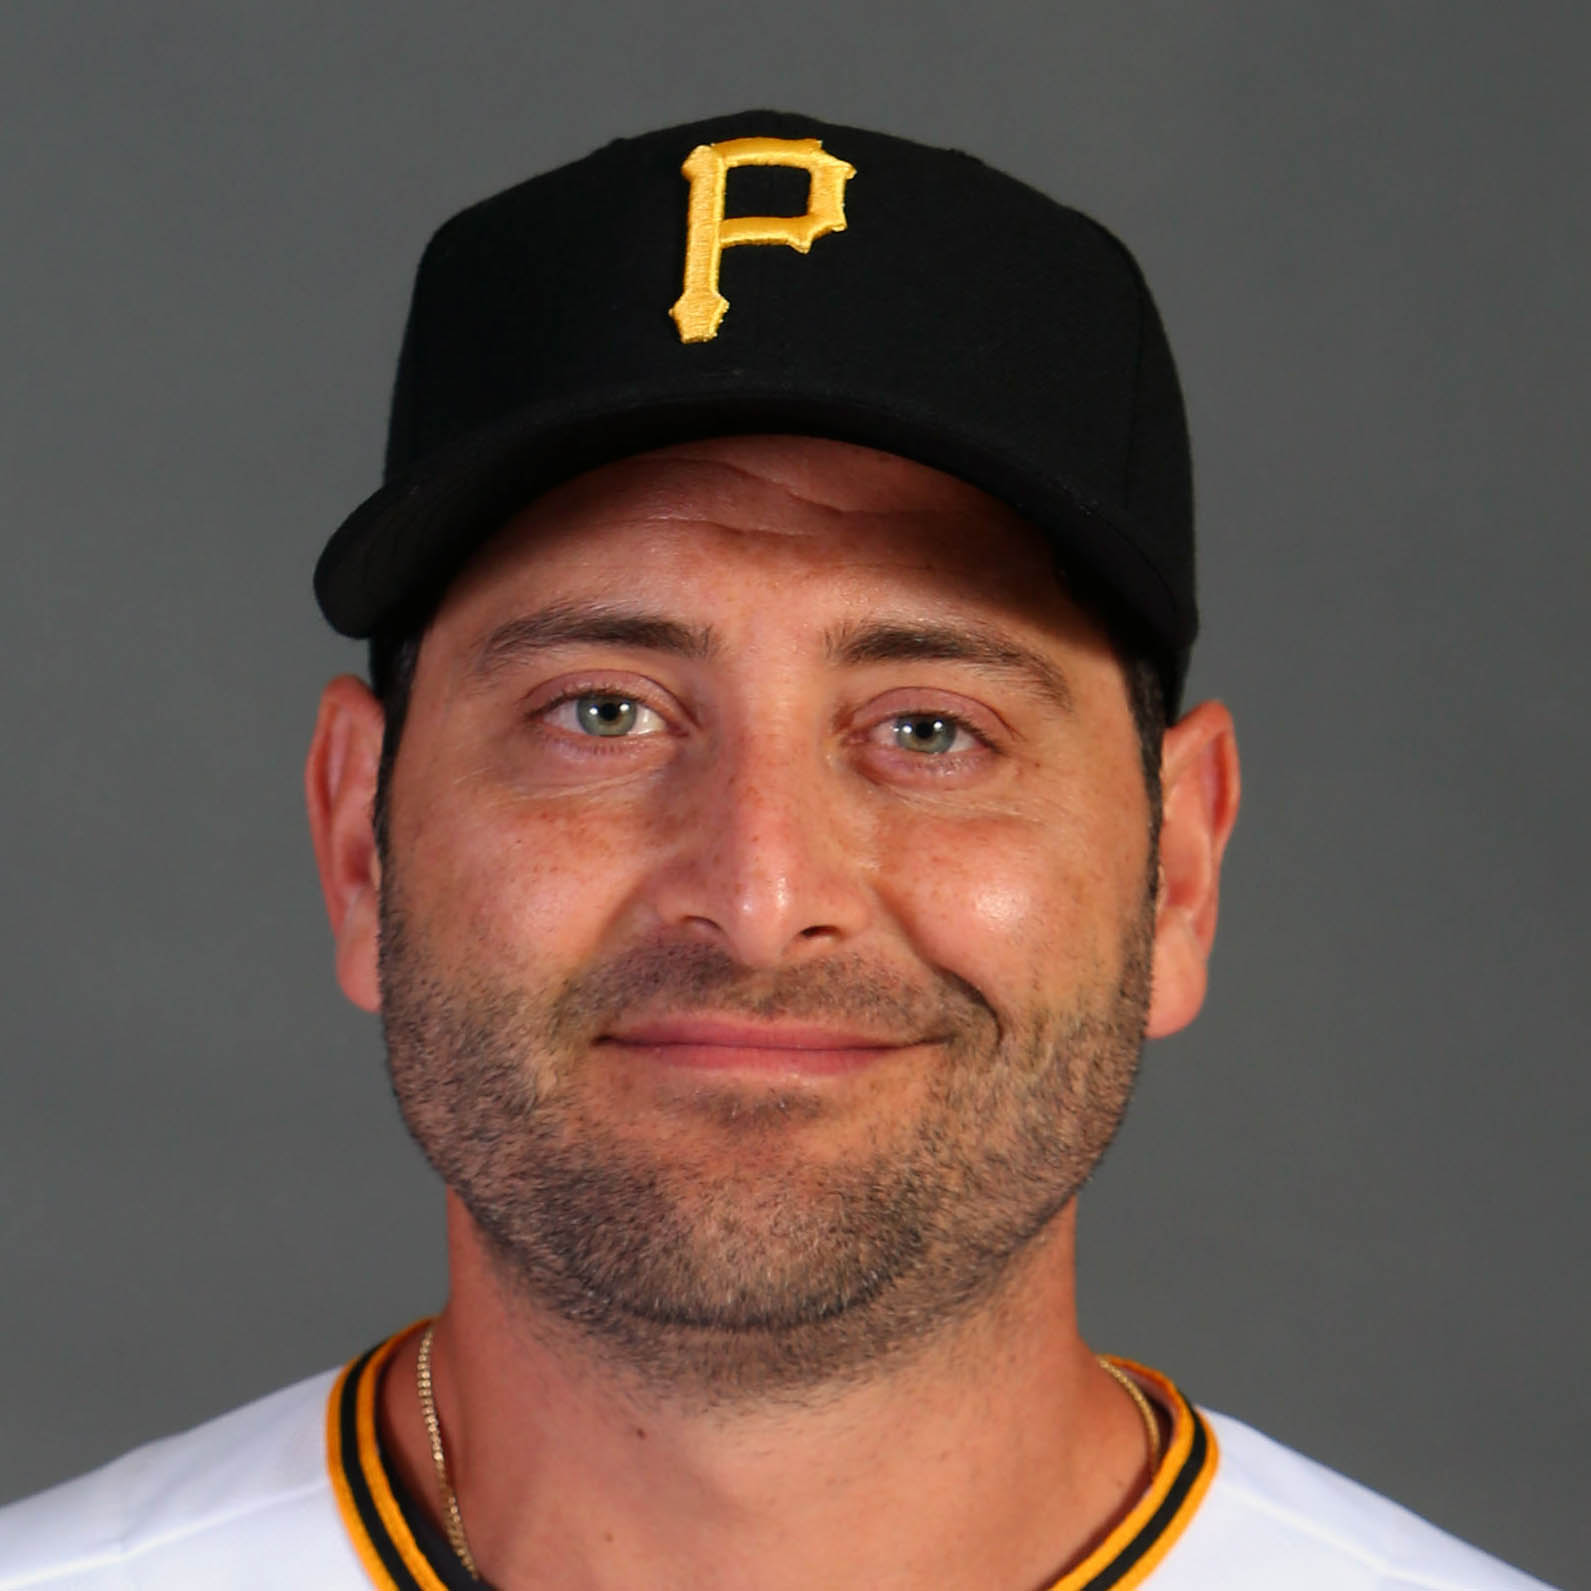 Francisco Cervelli (R) Headshot